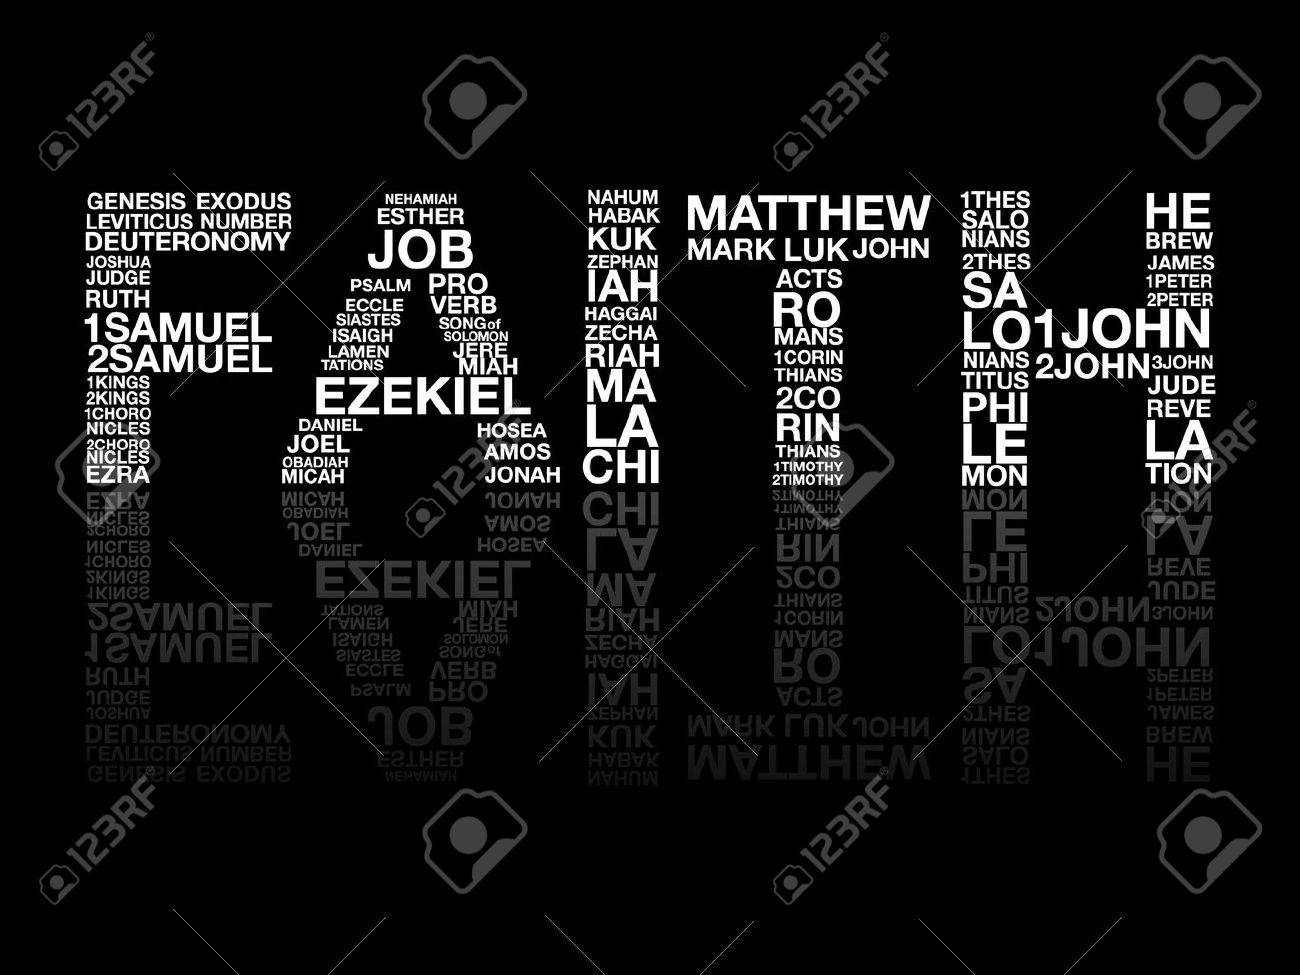 Faith from bible word graphic vector. - 39871212